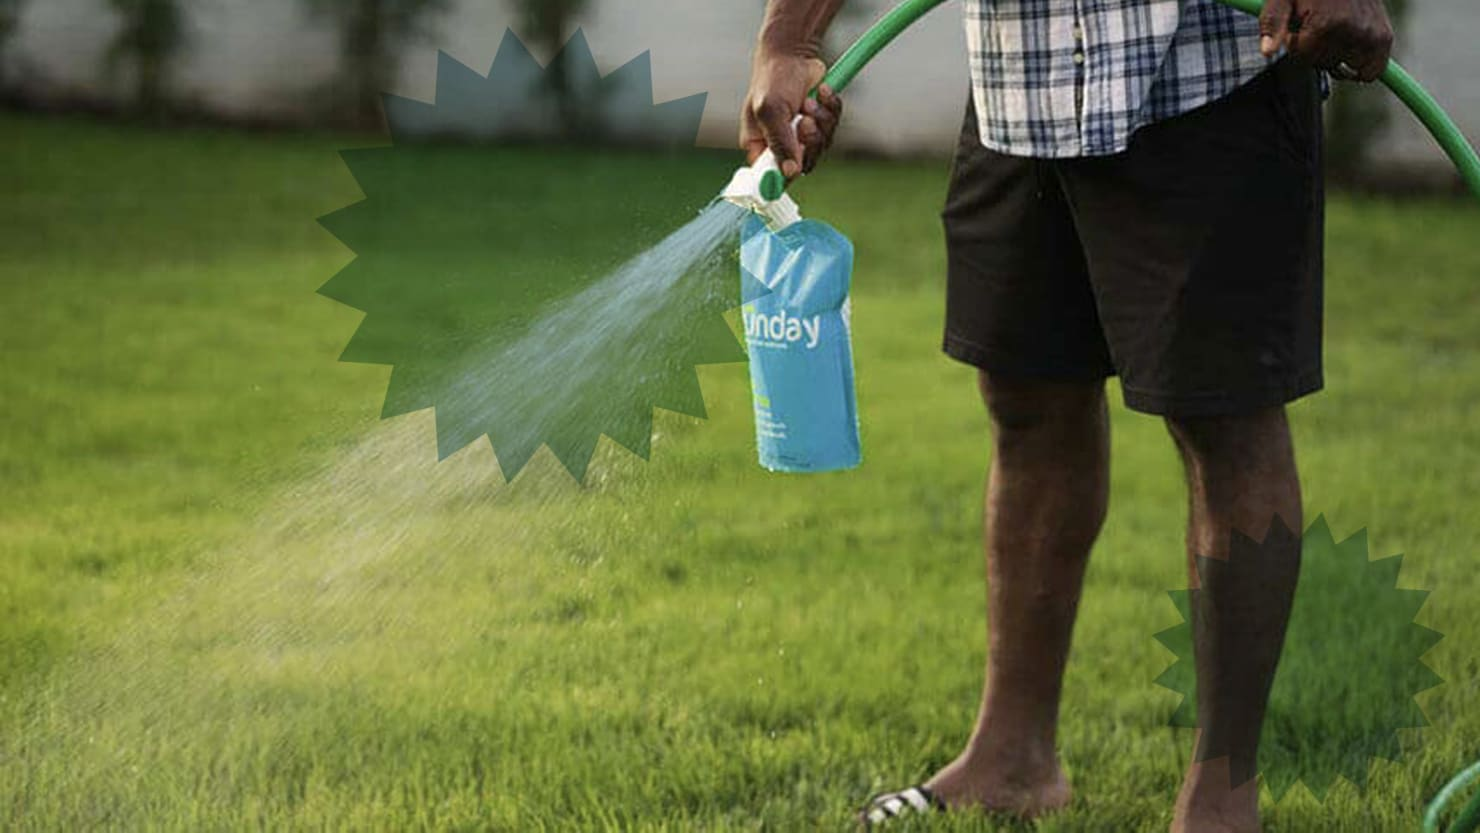 Sunday Takes the Guess Work Out of Lawn Care. And Most of the Dangerous Chemicals, Too